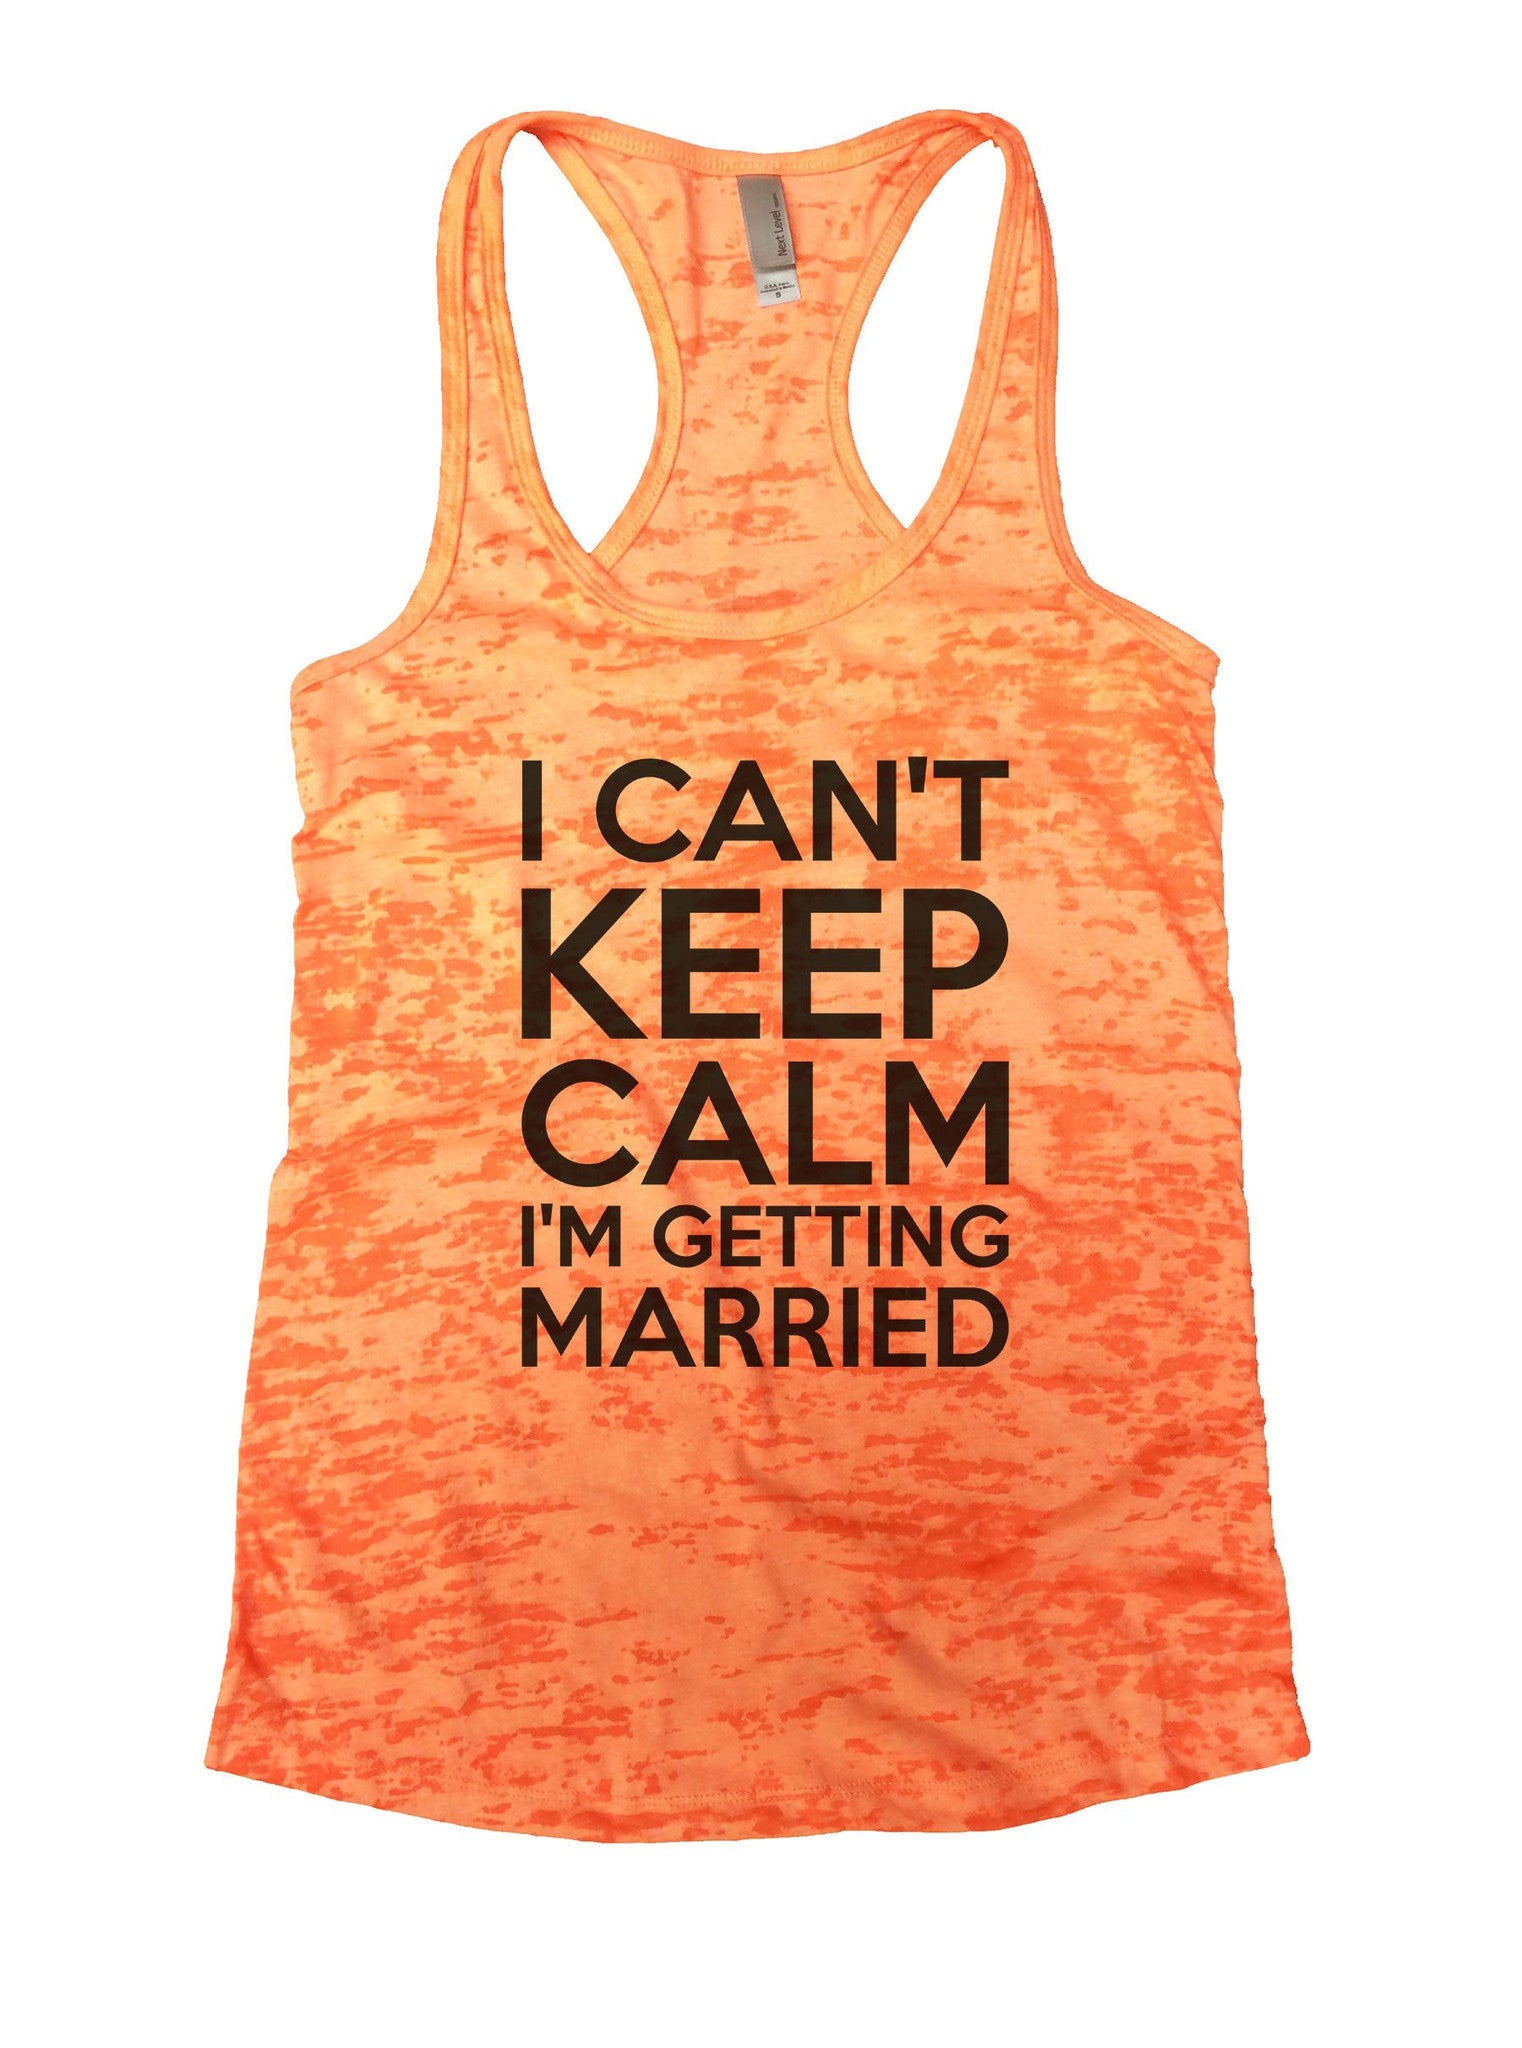 I Can't Keep Calm I'm Getting Married Burnout Tank Top By BurnoutTankTops.com - 887 - Funny Shirts Tank Tops Burnouts and Triblends  - 3